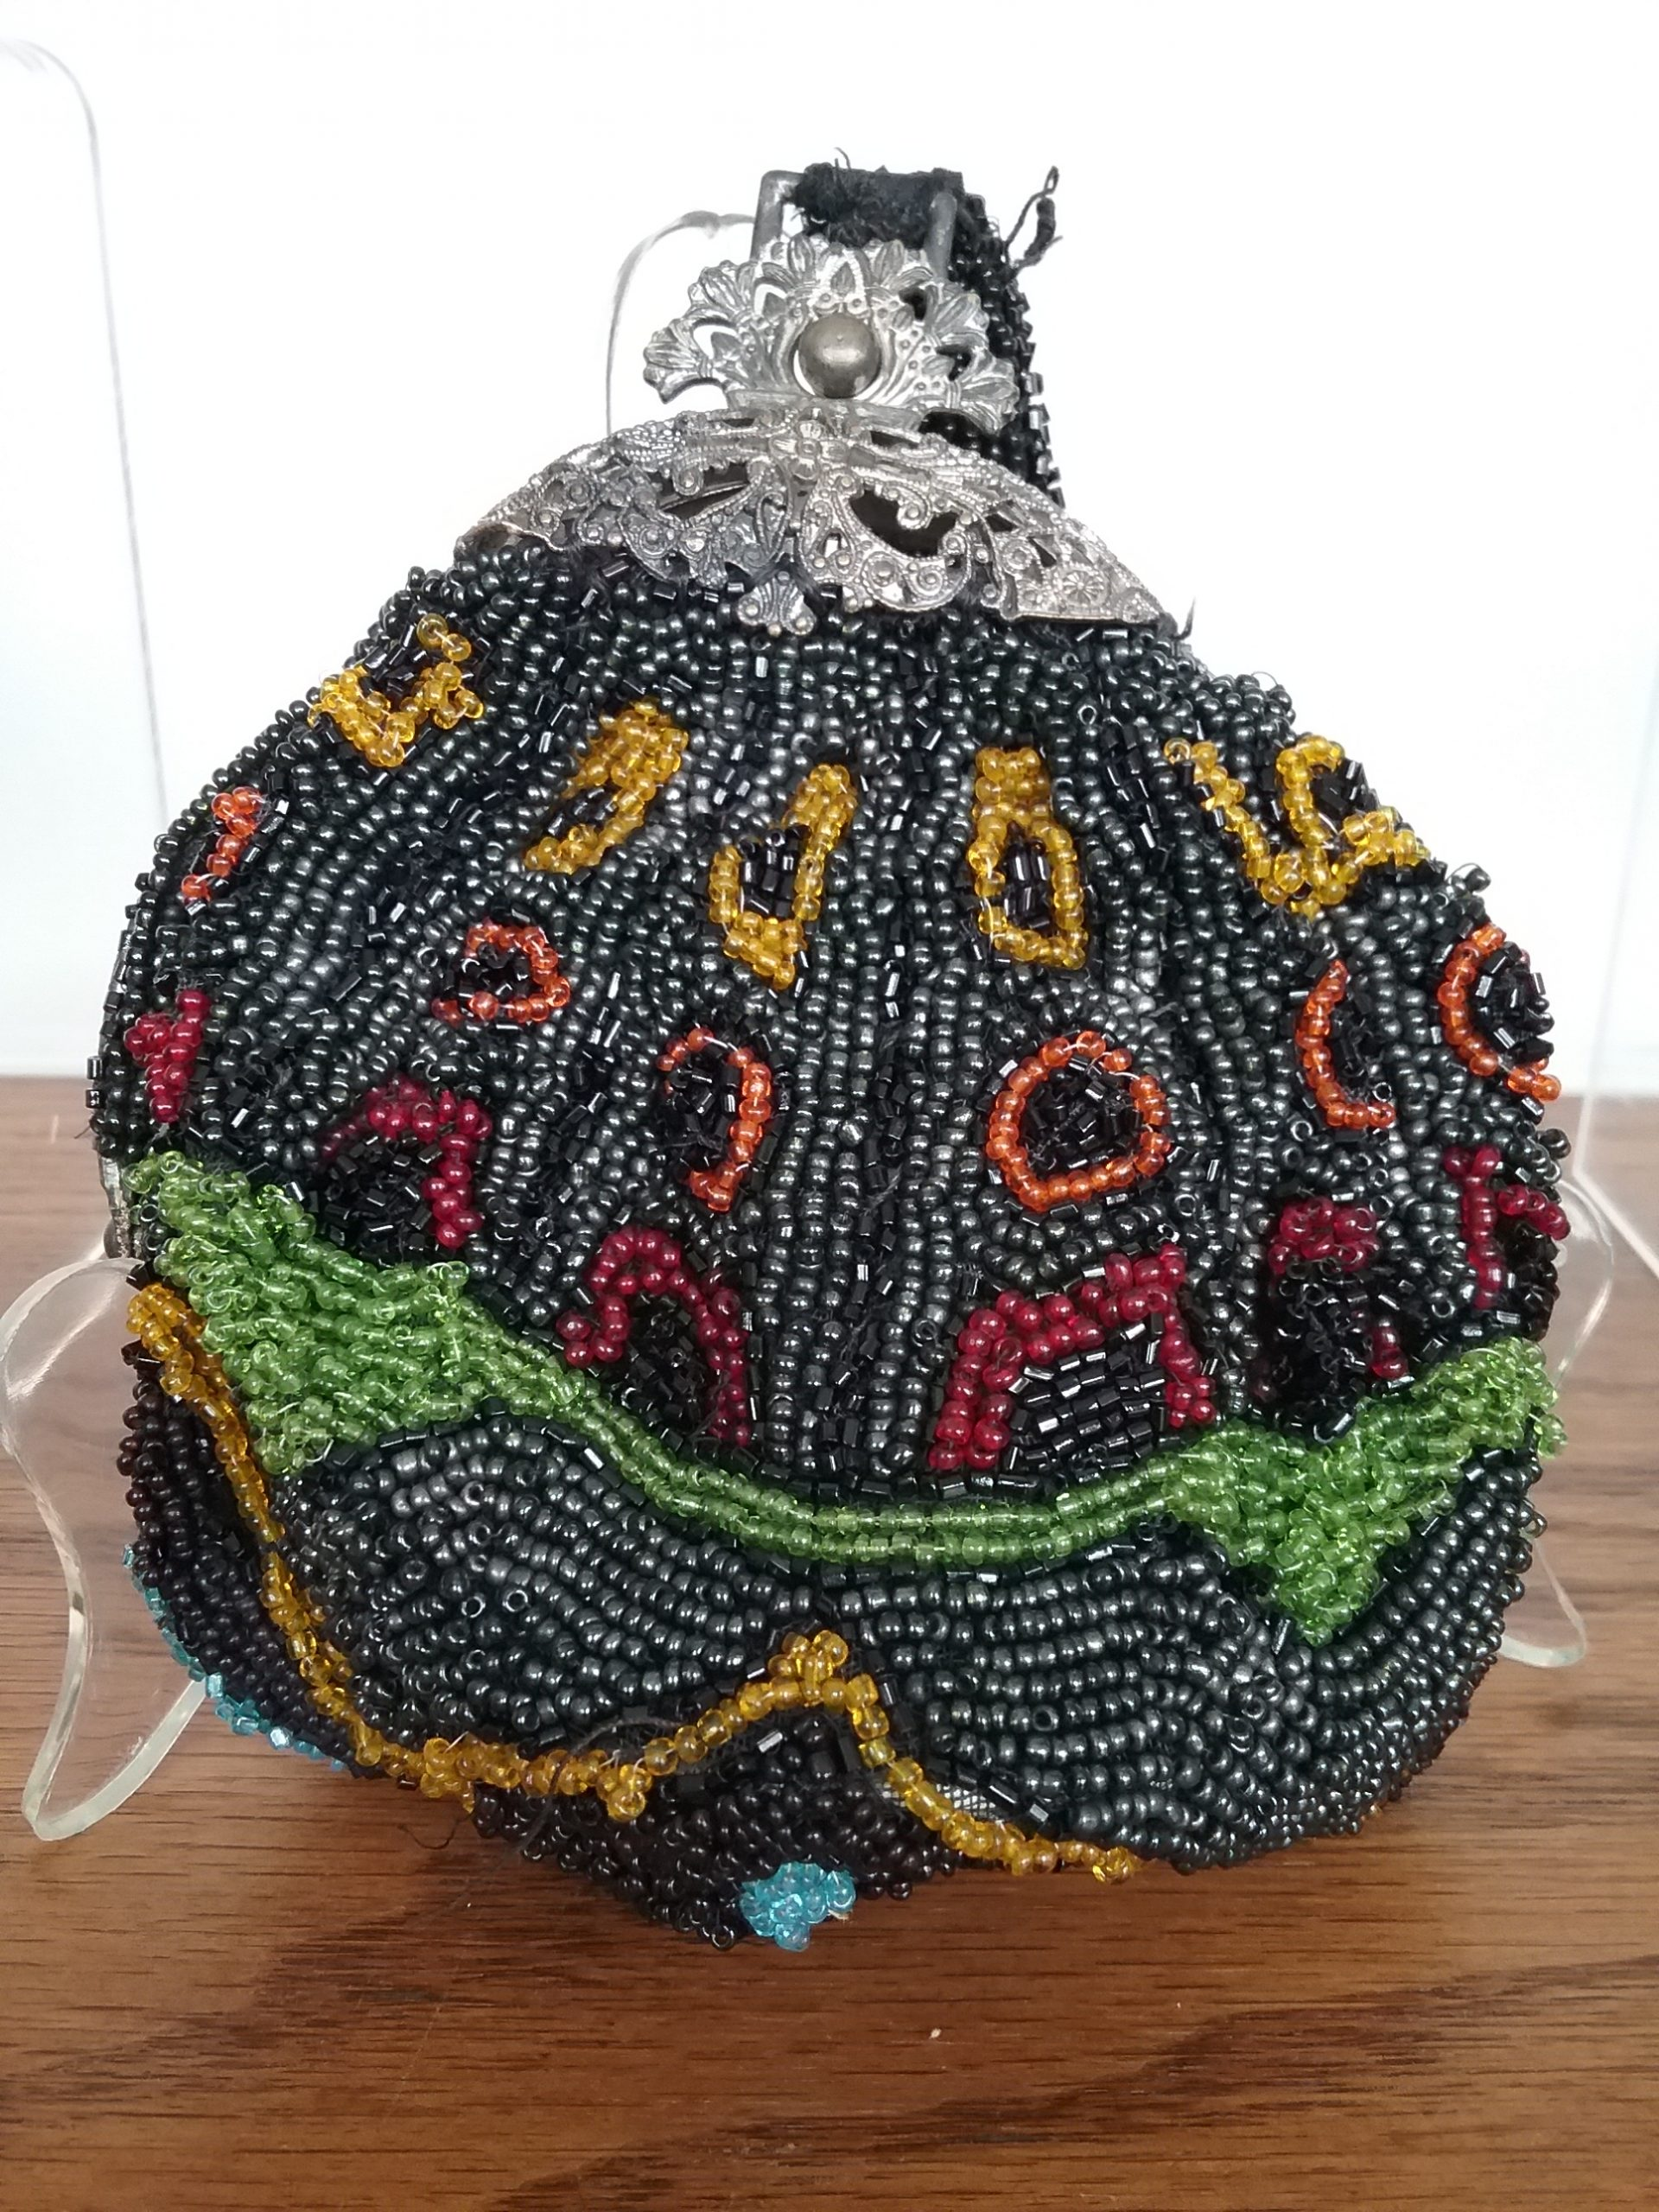 Evening Handbag: Victorian-era evening handbag beaded in black, red, orange, yellow, and green seed beads. There is a mirror on the inside in the bottom of this handbag. Unknown donor. MCHS collections, no accession number.